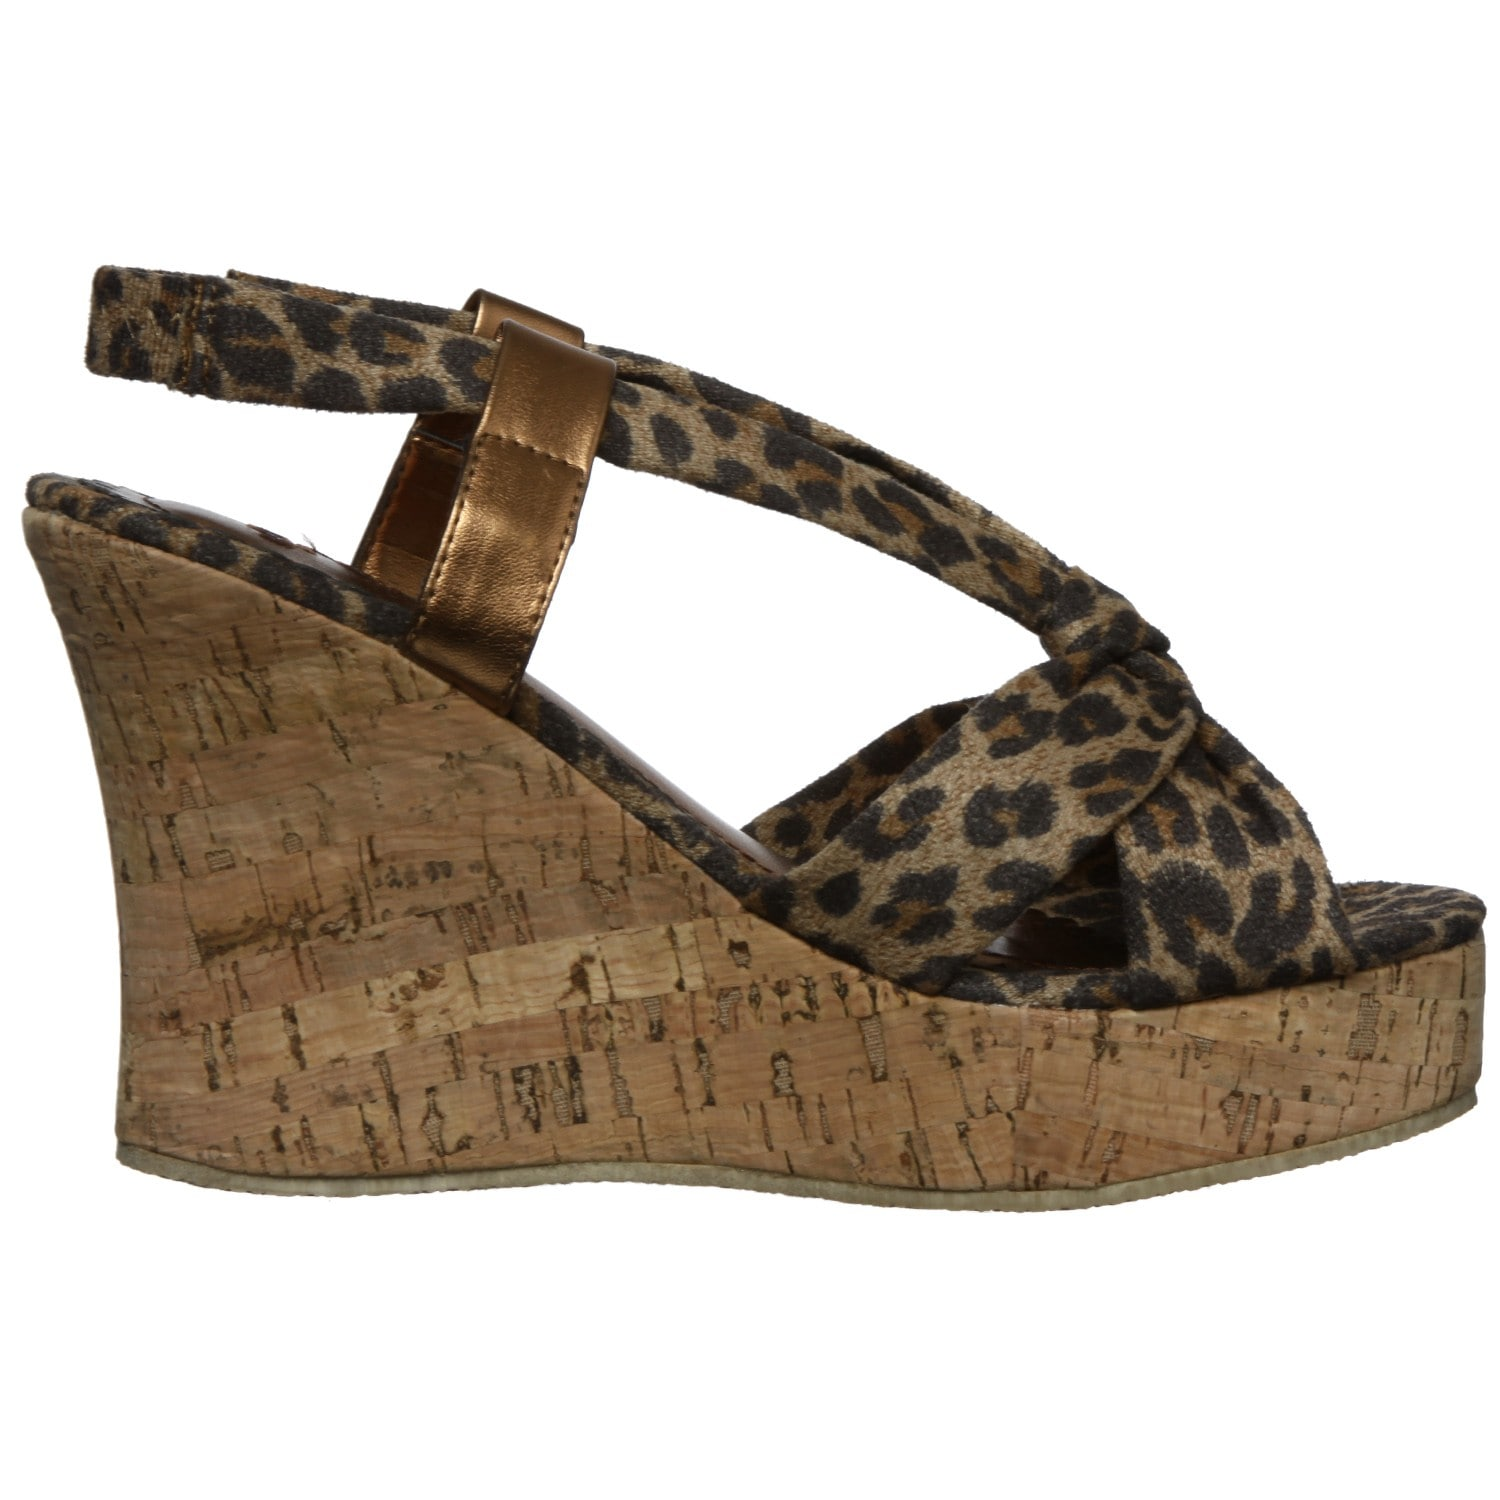 0bfc75ed9db4a Shop Groove Women s  Tatiana  Leopard Wedge Sandals - Free Shipping On  Orders Over  45 - Overstock - 6453598